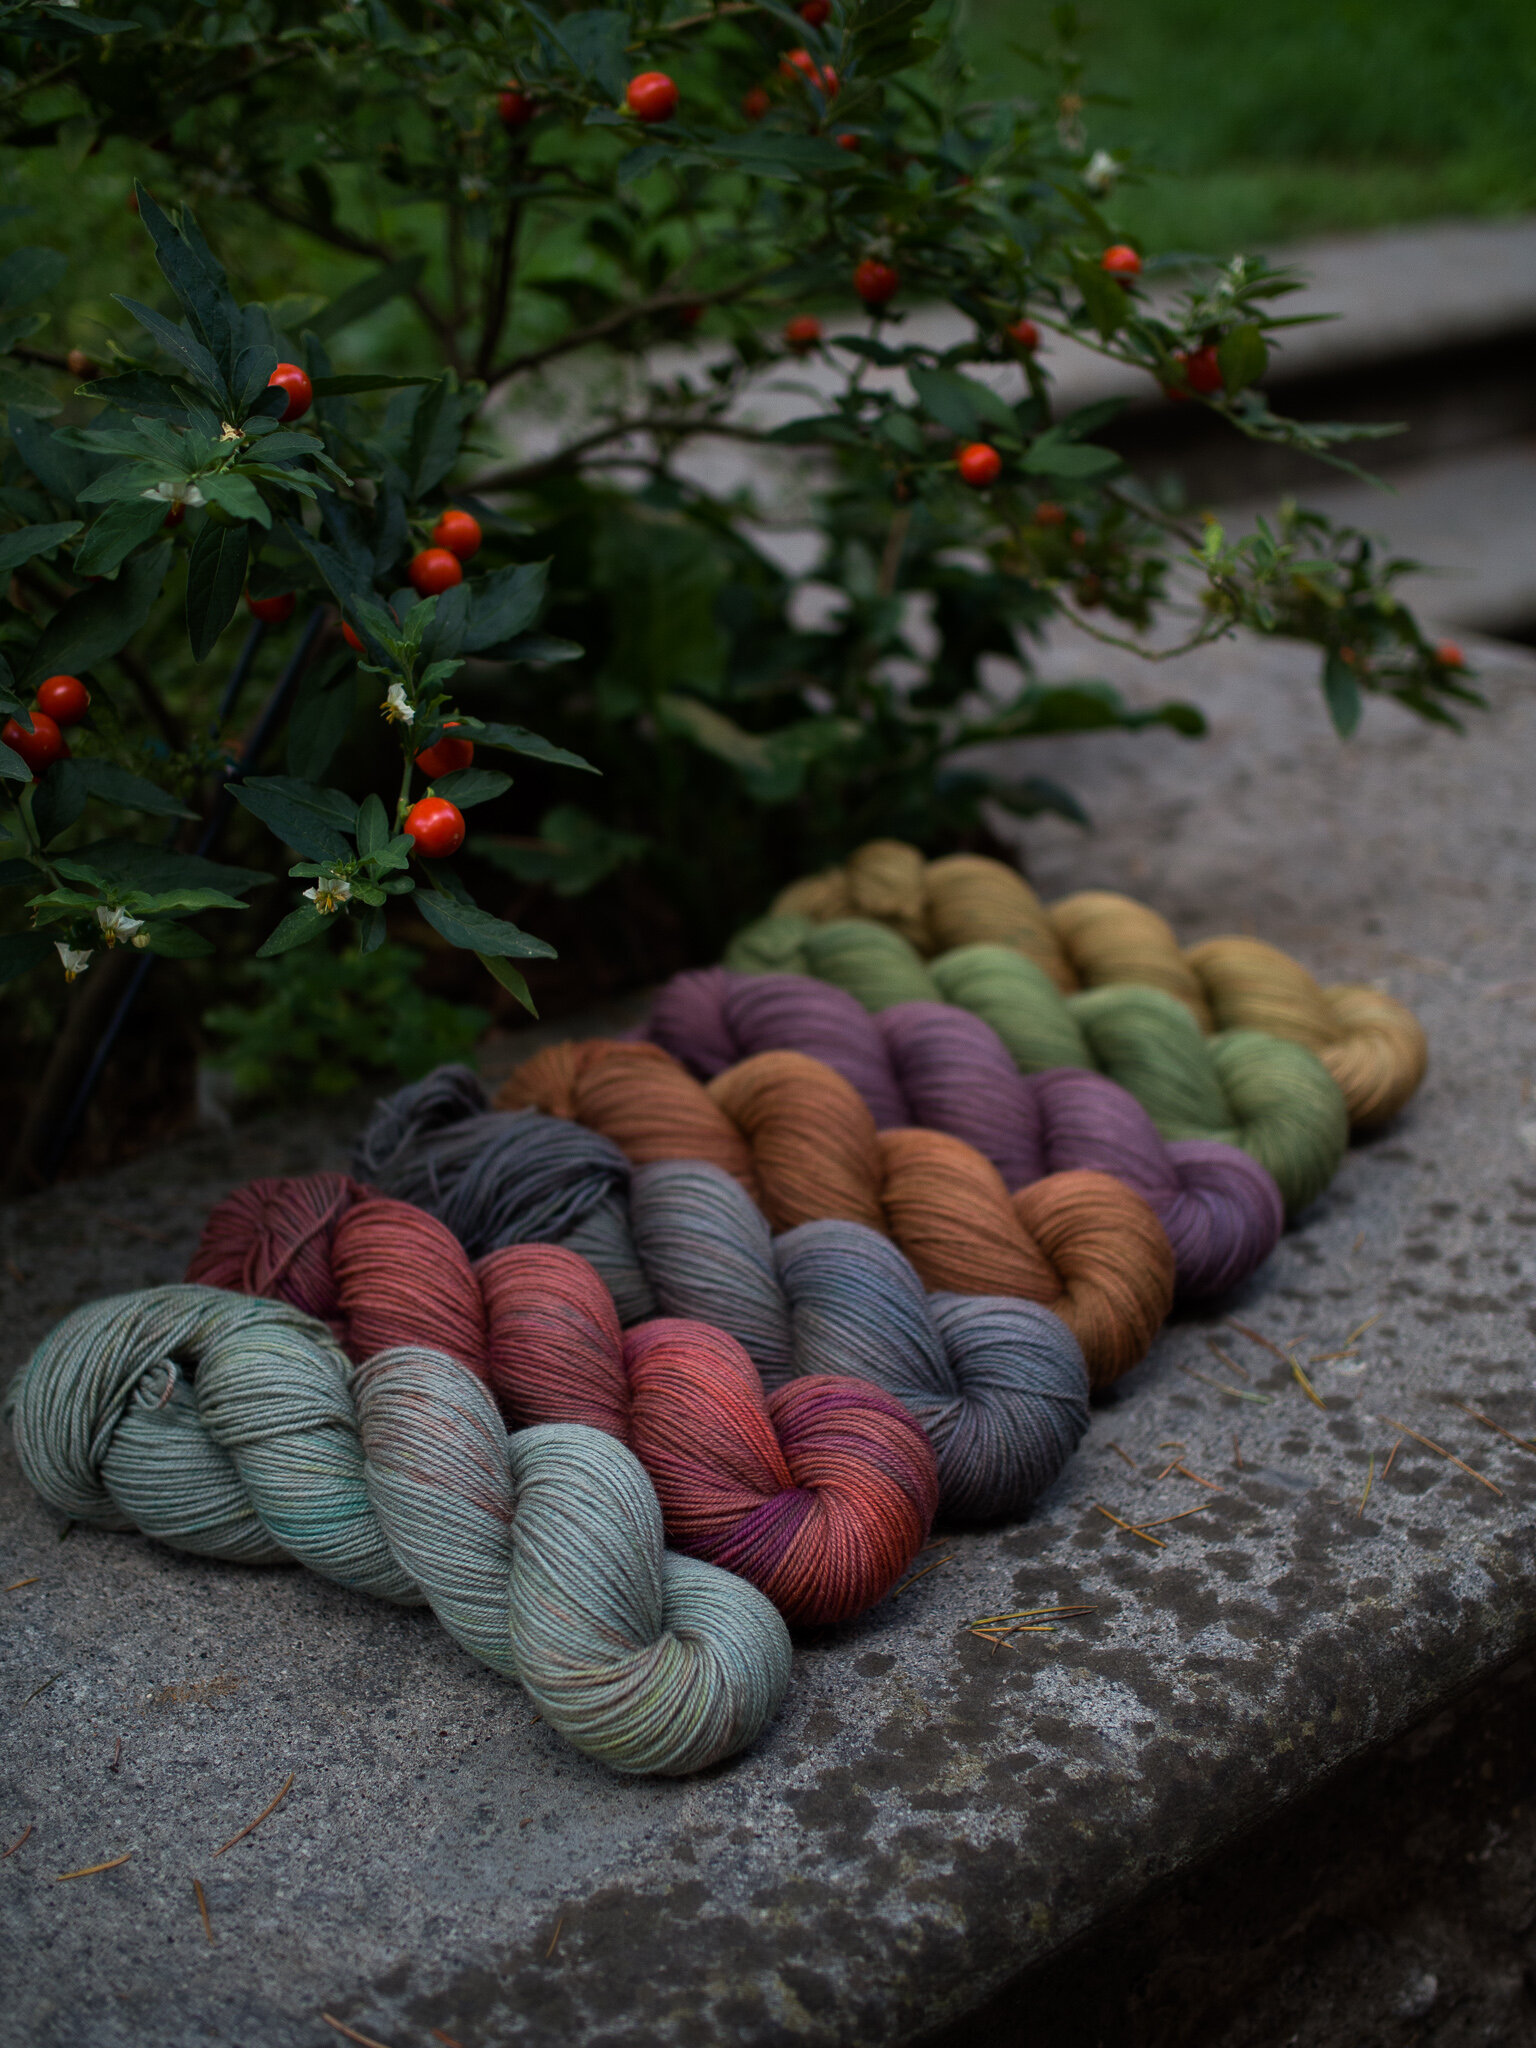 Newest yarn, Peruvian -